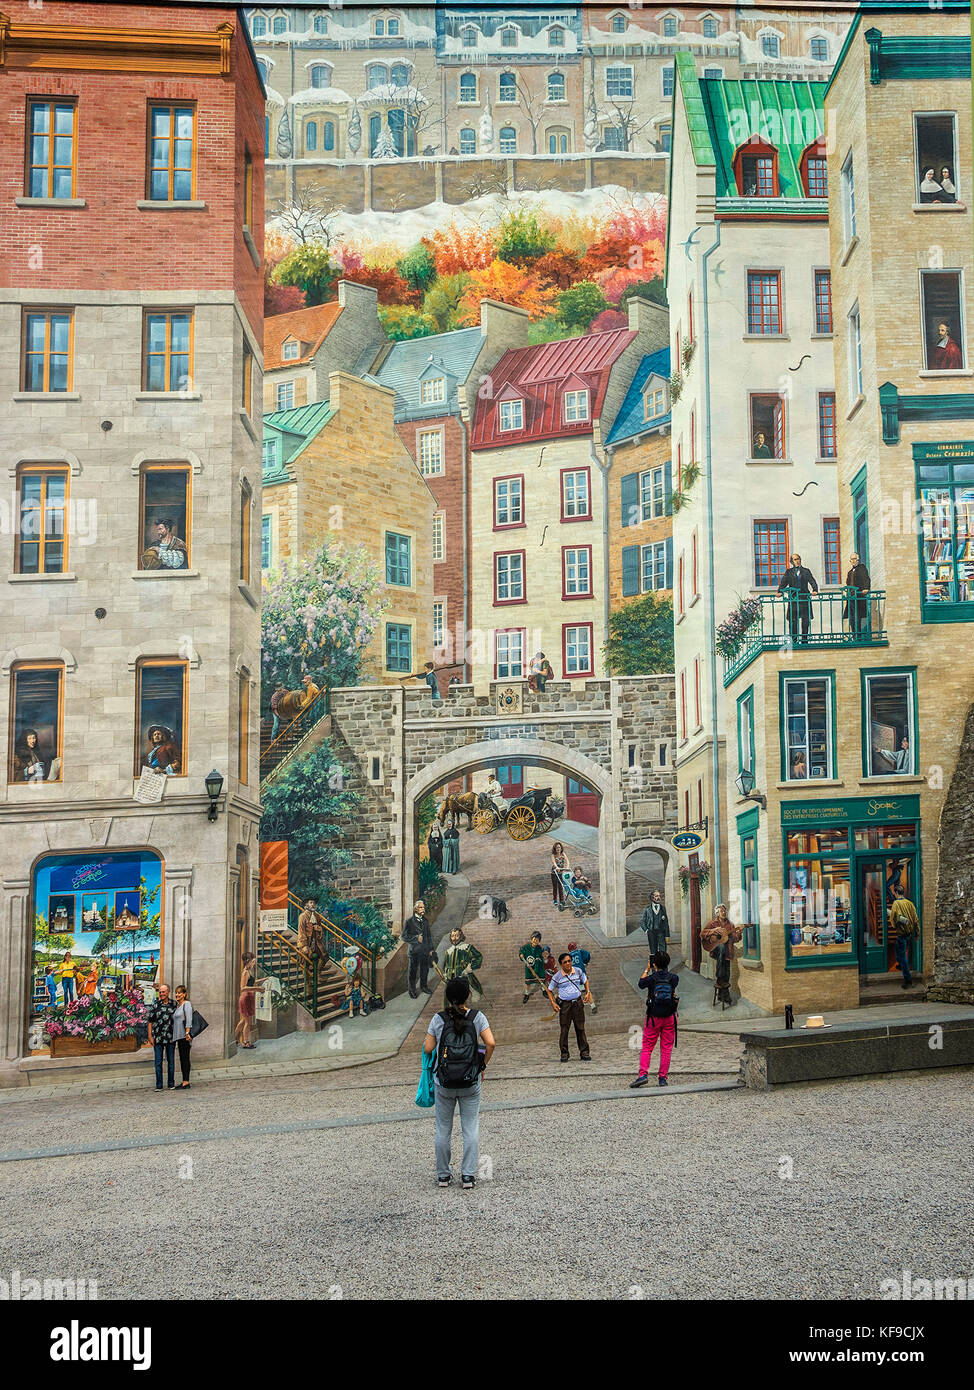 Wall Mural, Notre Dame Street, Quebec City, Canada   Stock Image Part 64